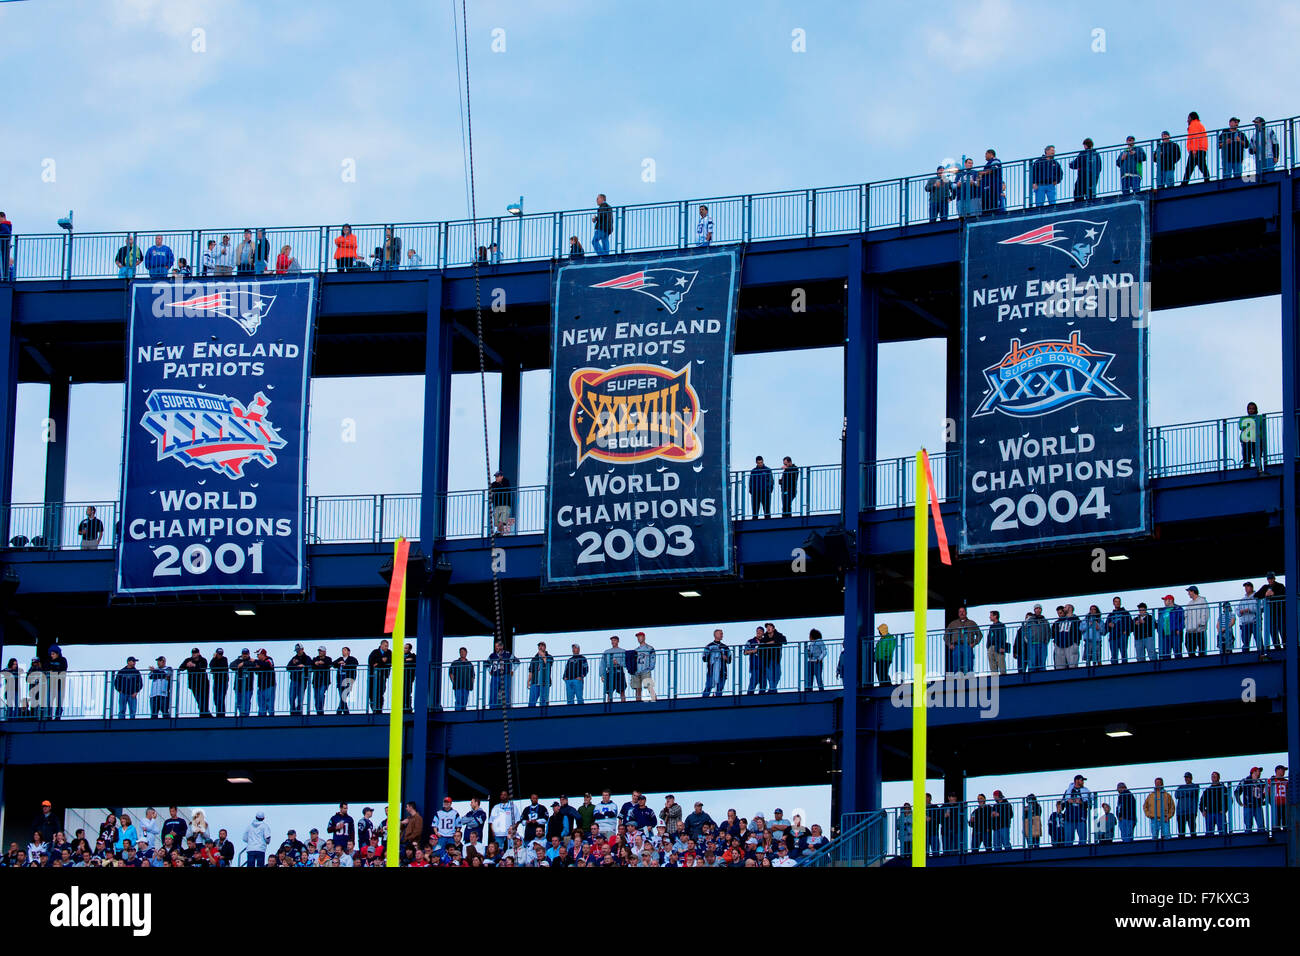 super bowl champion banners at gillette stadium new england